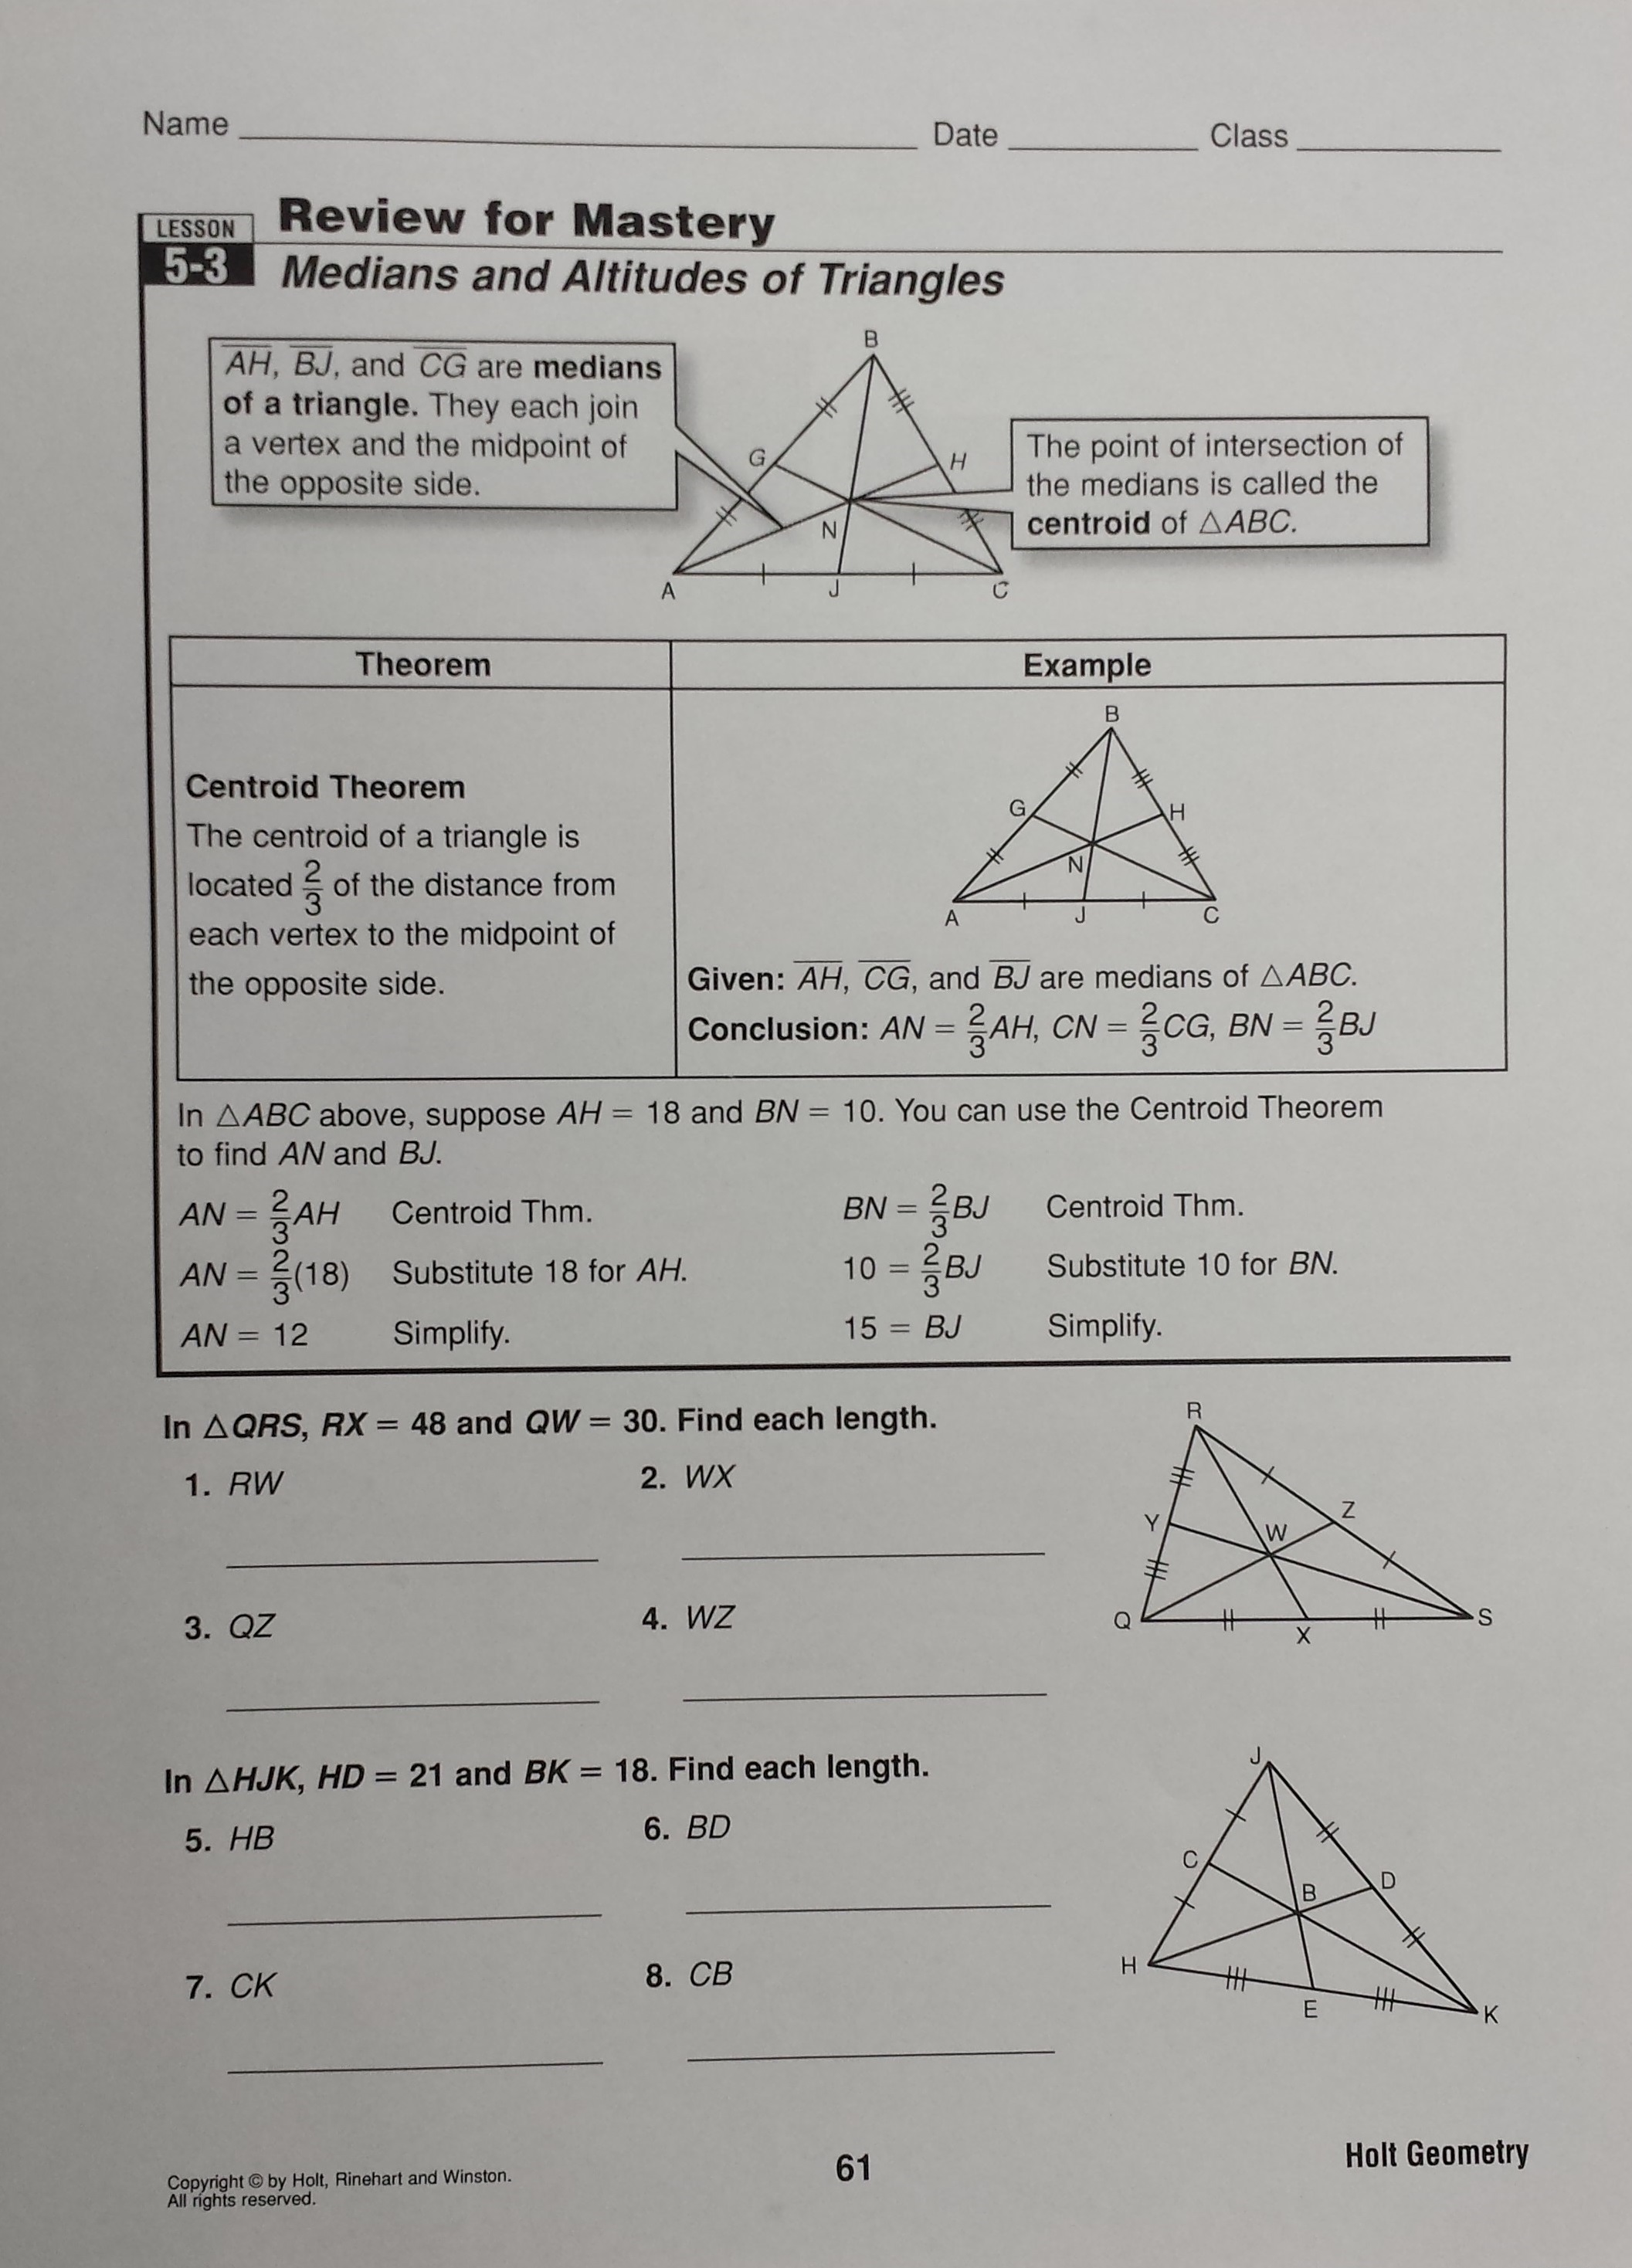 Unit 5 relationships in triangles homework 1 triangle midsegments